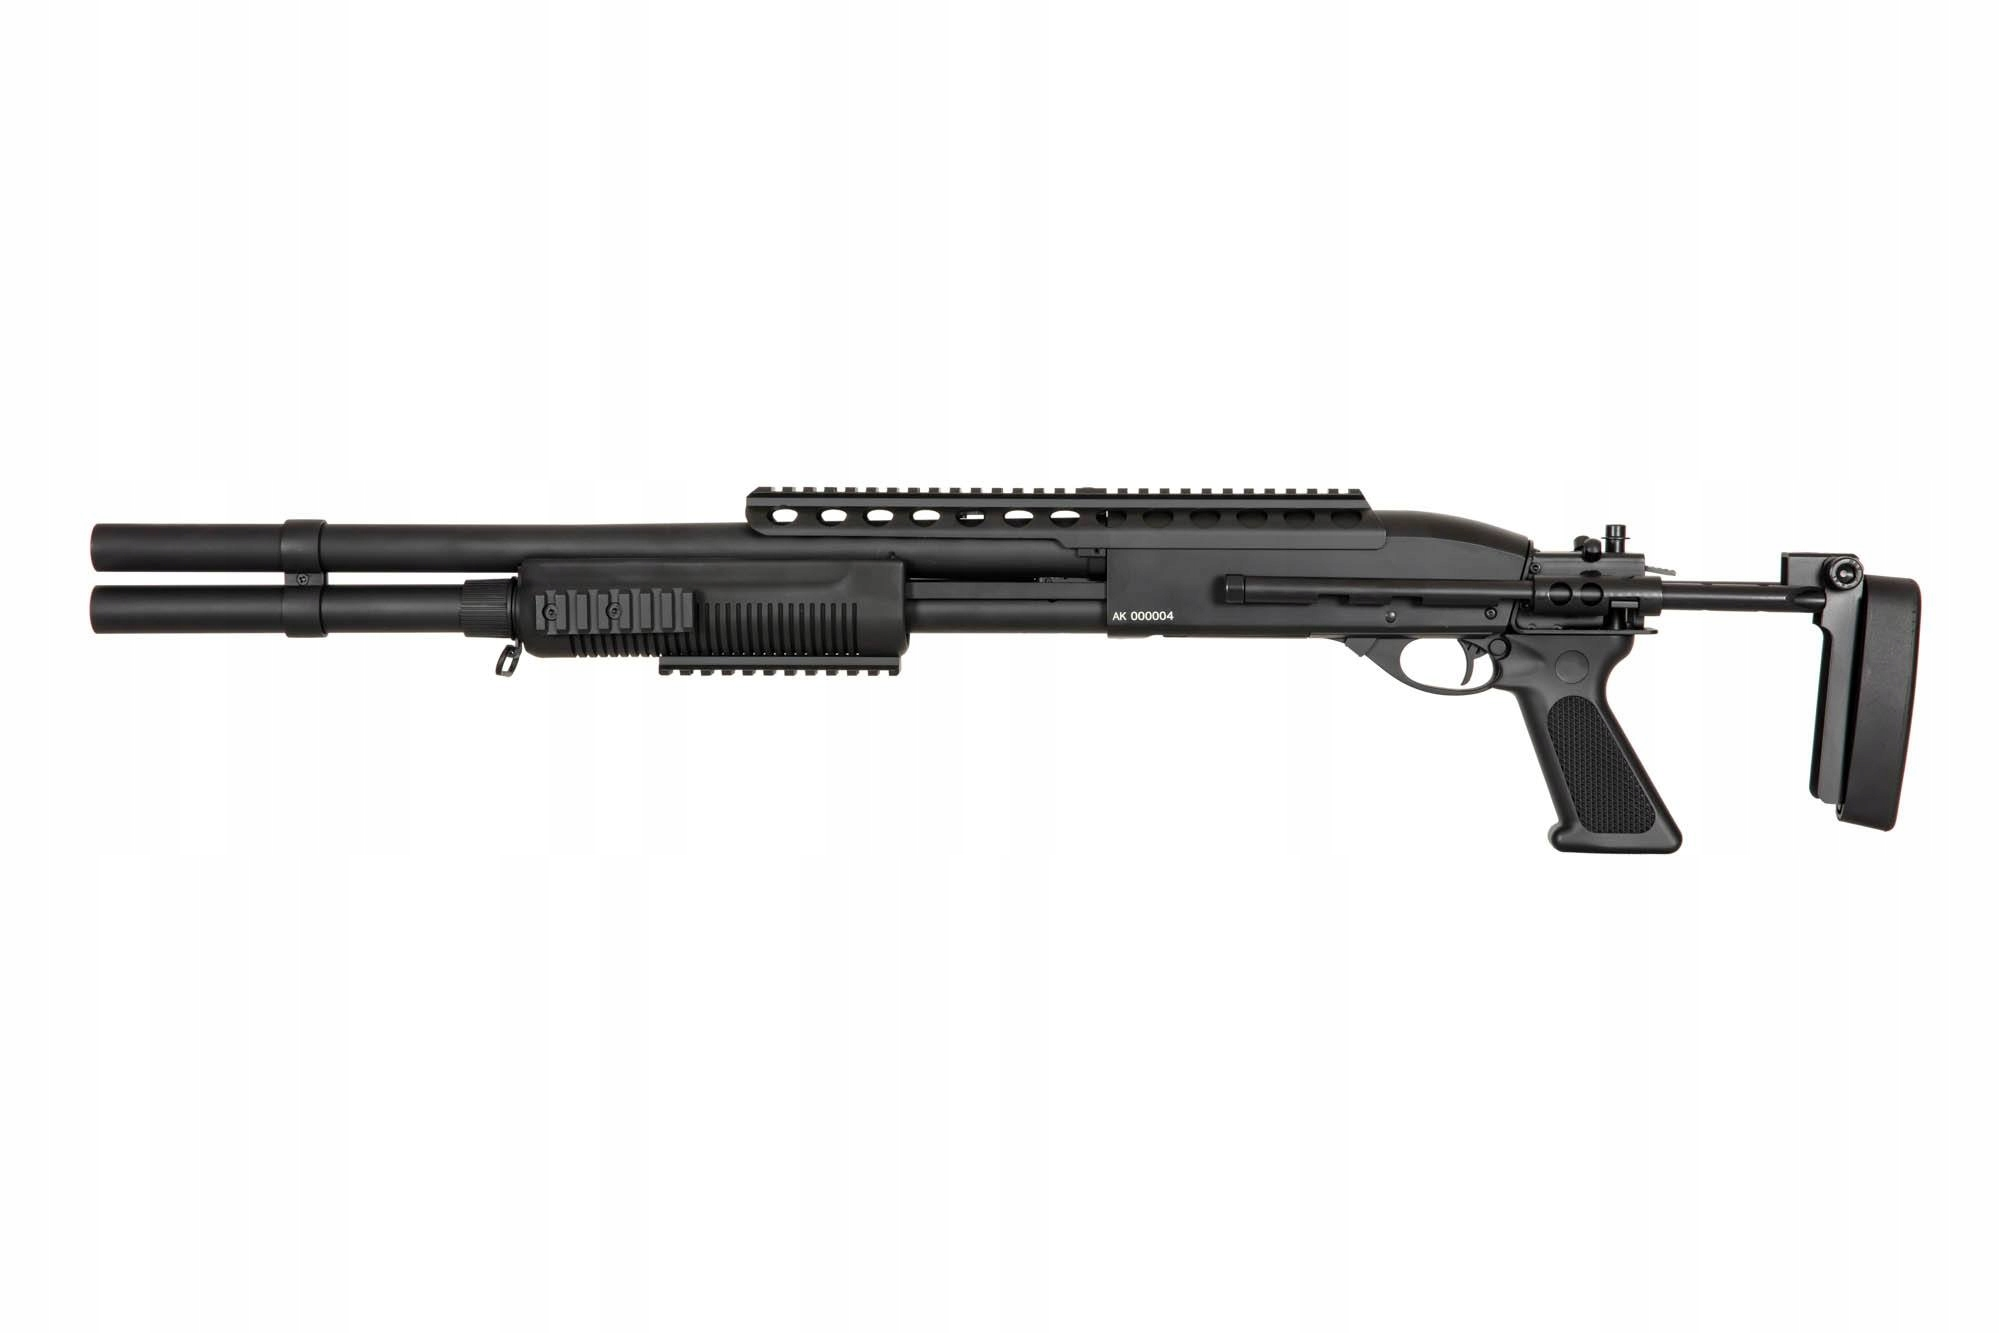 Airsoft -  SXR-006 Shotgun Replica